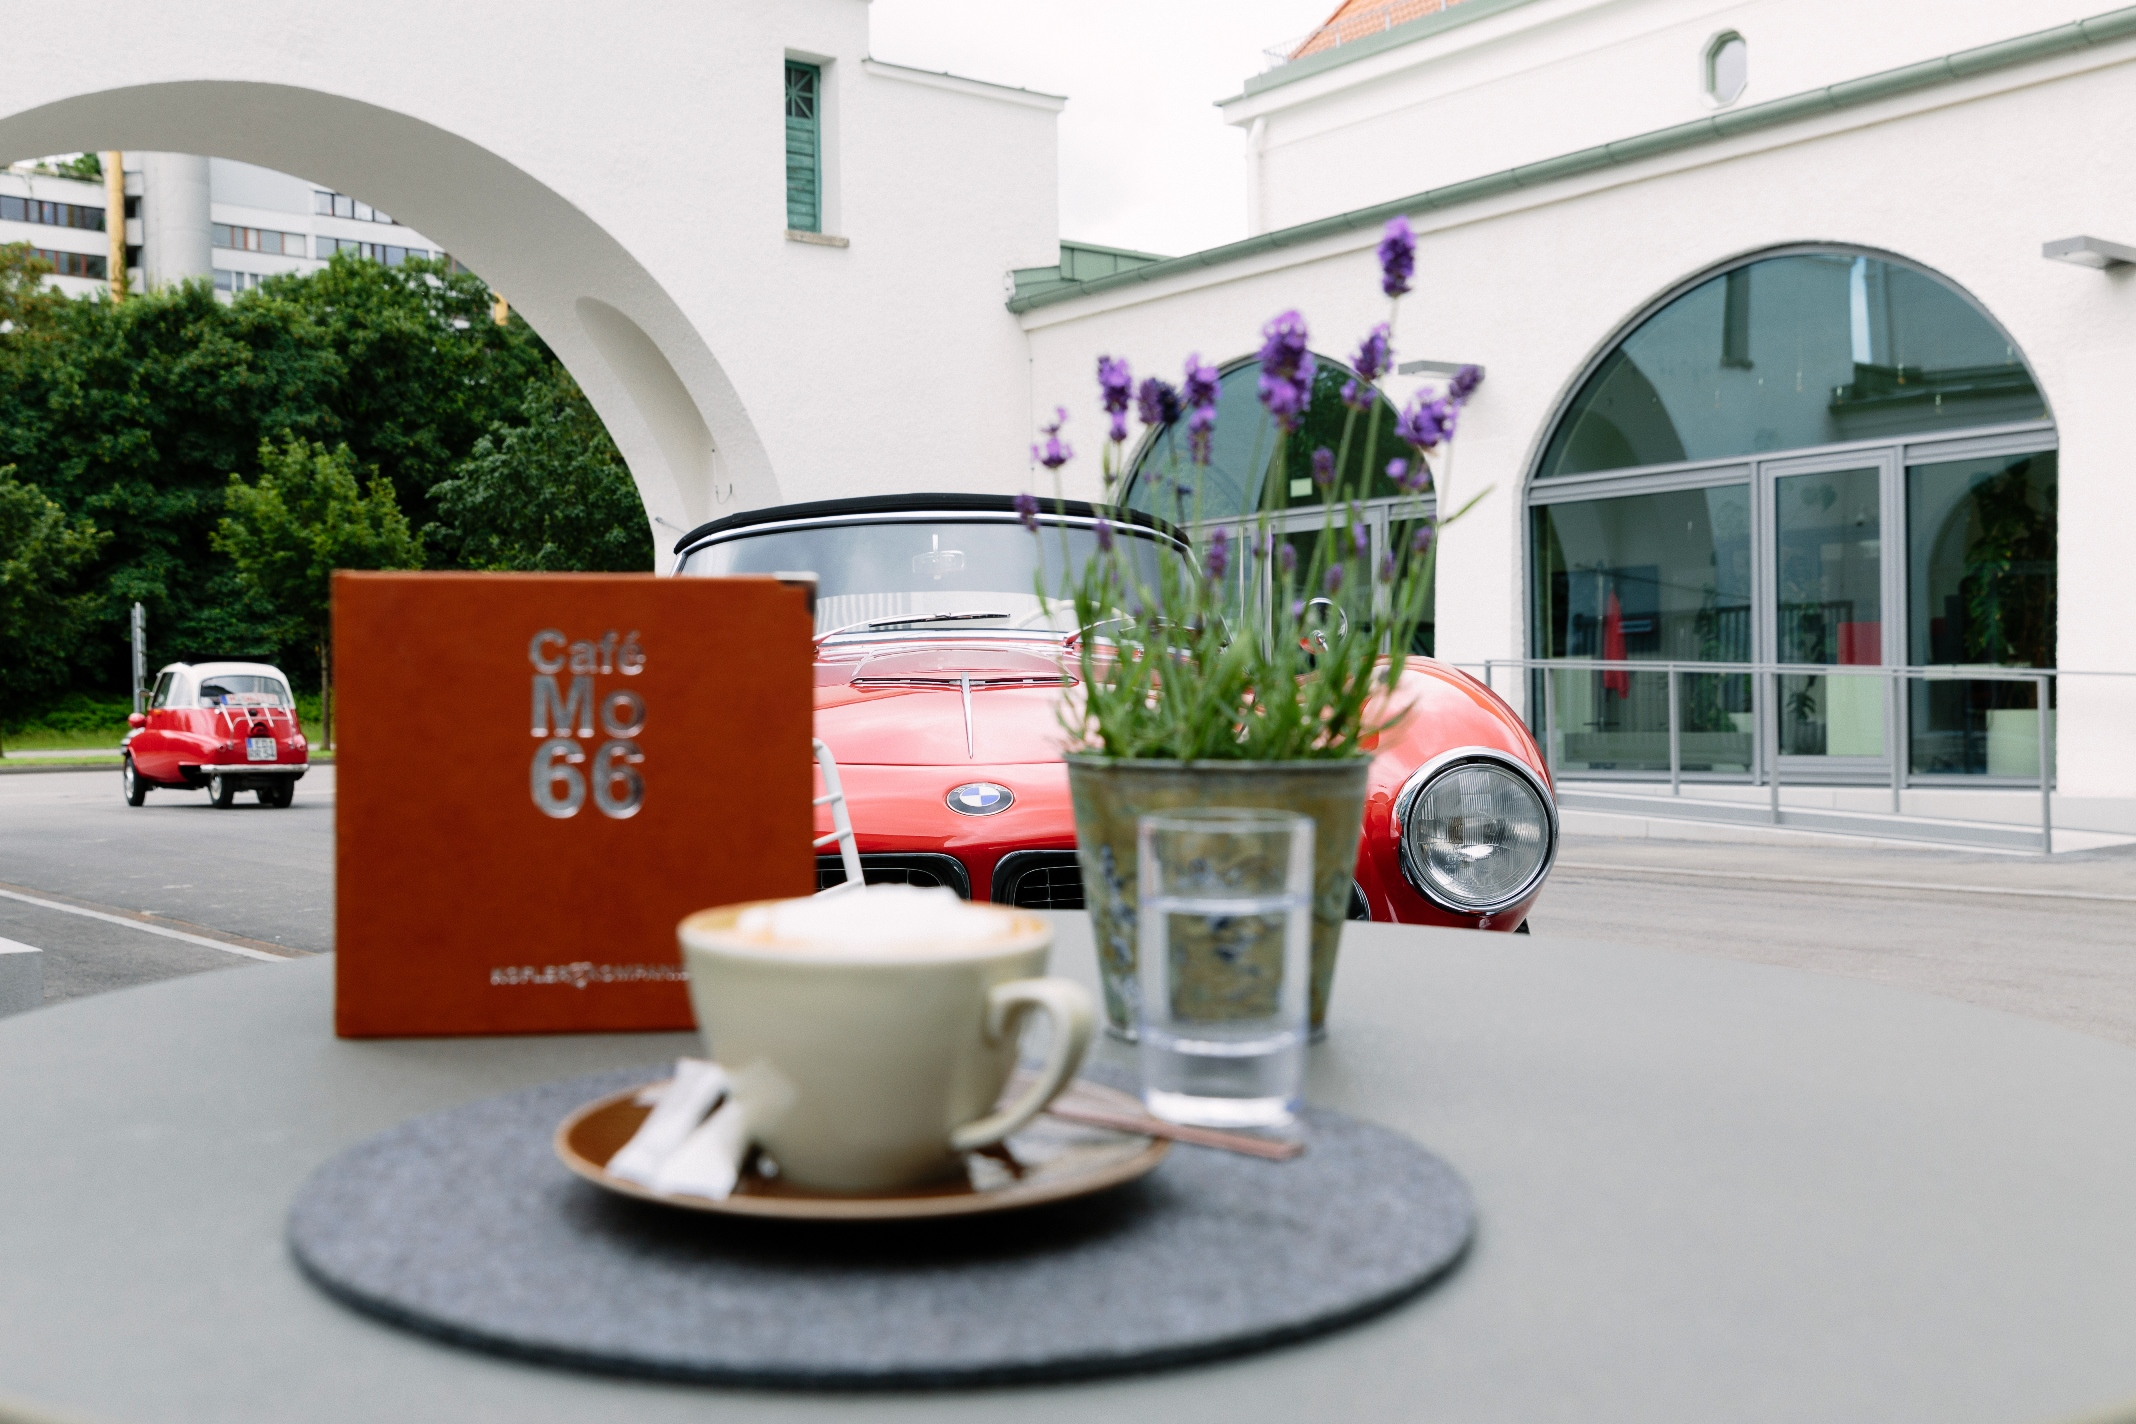 Cafe MO 66 at BMW Group Classic